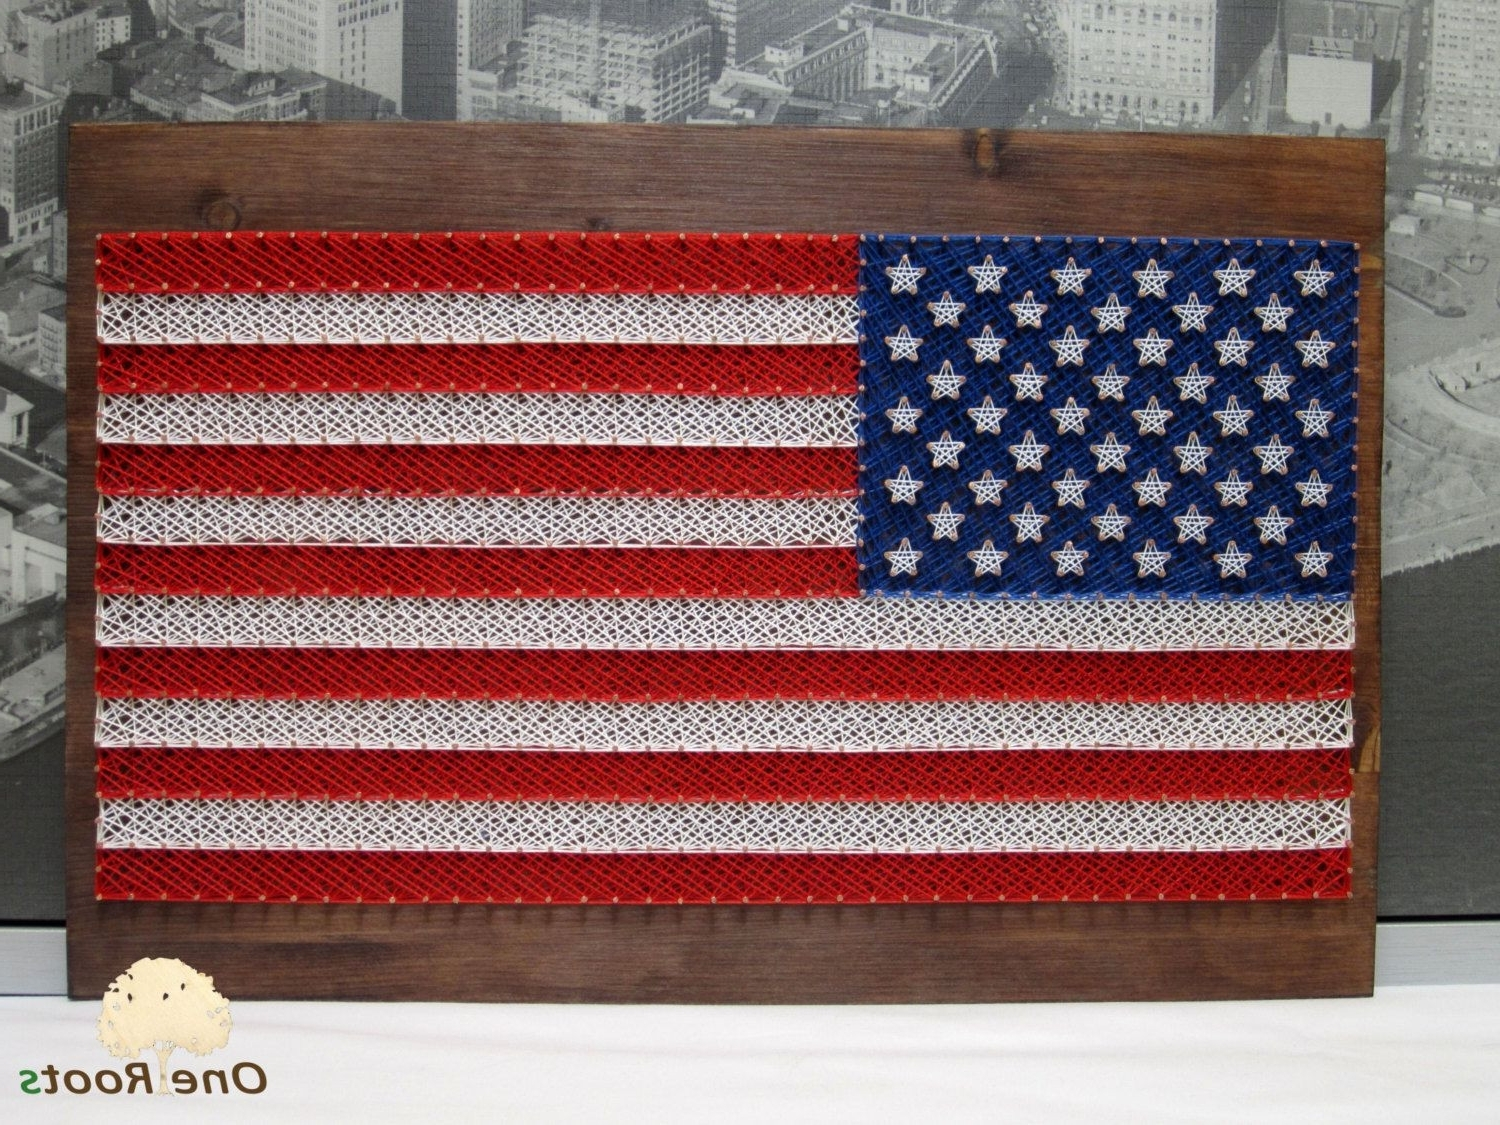 Vintage American Flag Wall Art Inside Recent String Art American Flag Usa Wall Arteroots On Etsy S Design (View 10 of 15)